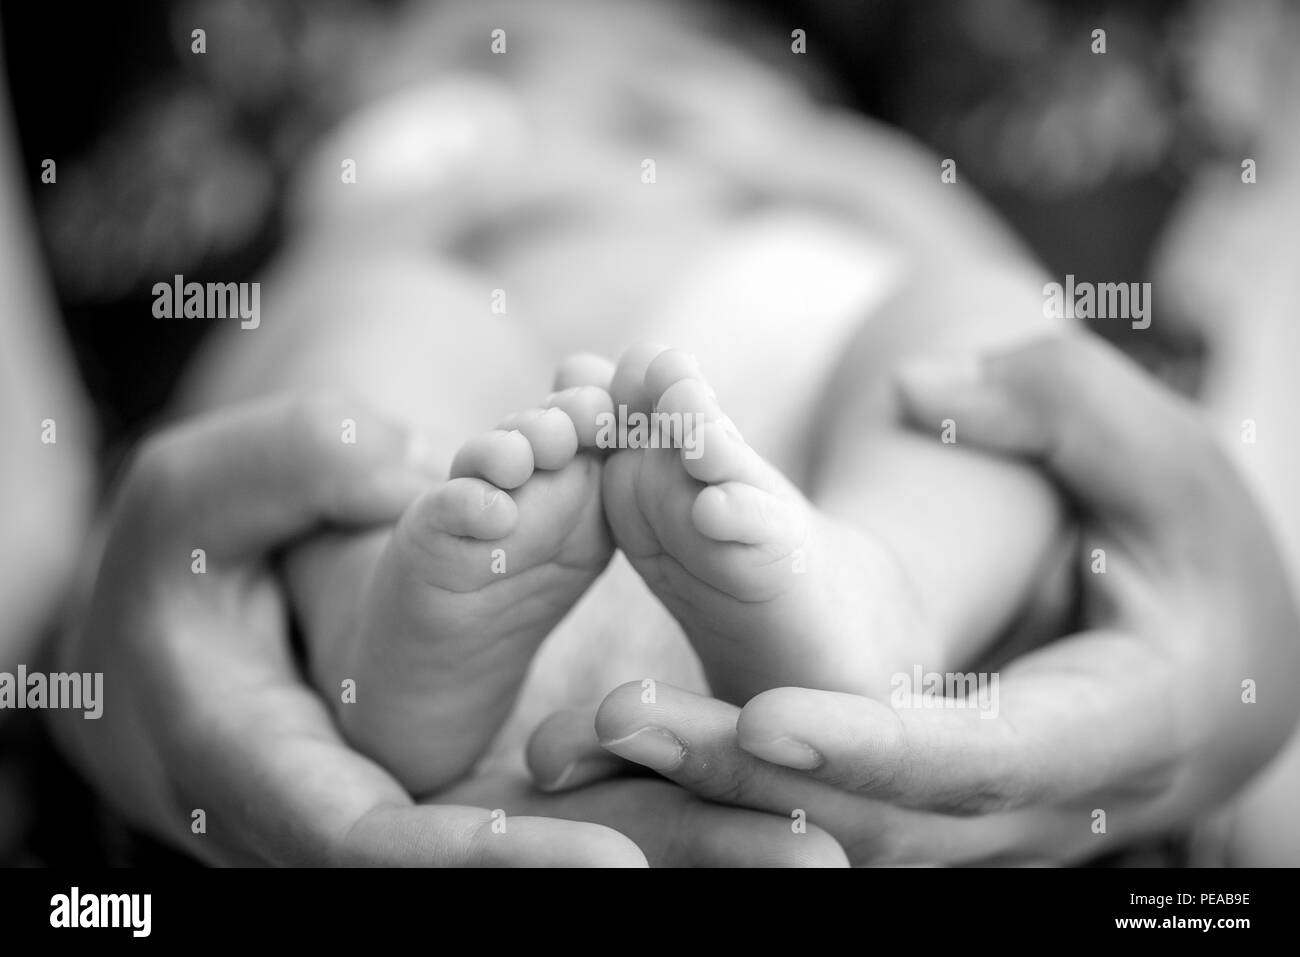 Feet of a newborn baby in the hands of parents. Happy Family oncept. Mum and Dad hug their baby's legs. - Stock Image